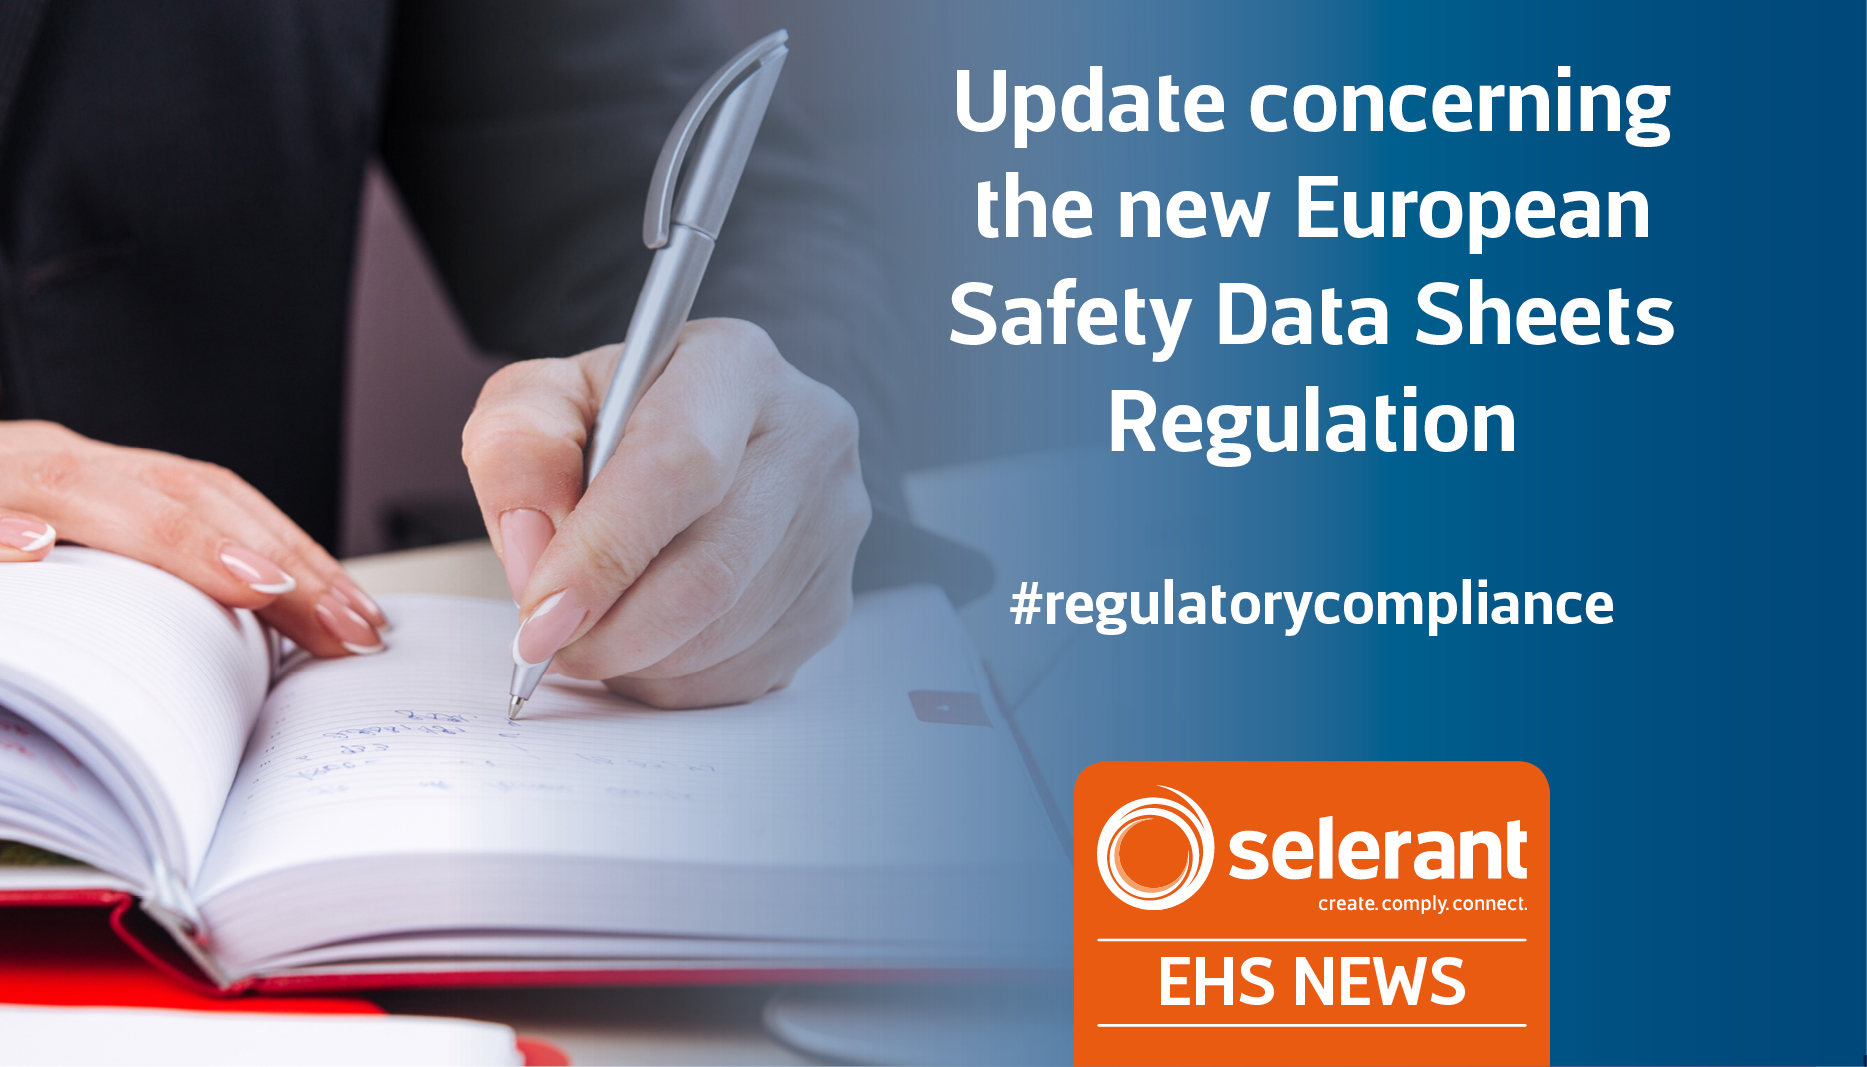 Update concerning the new European Safety Data Sheets Regulation